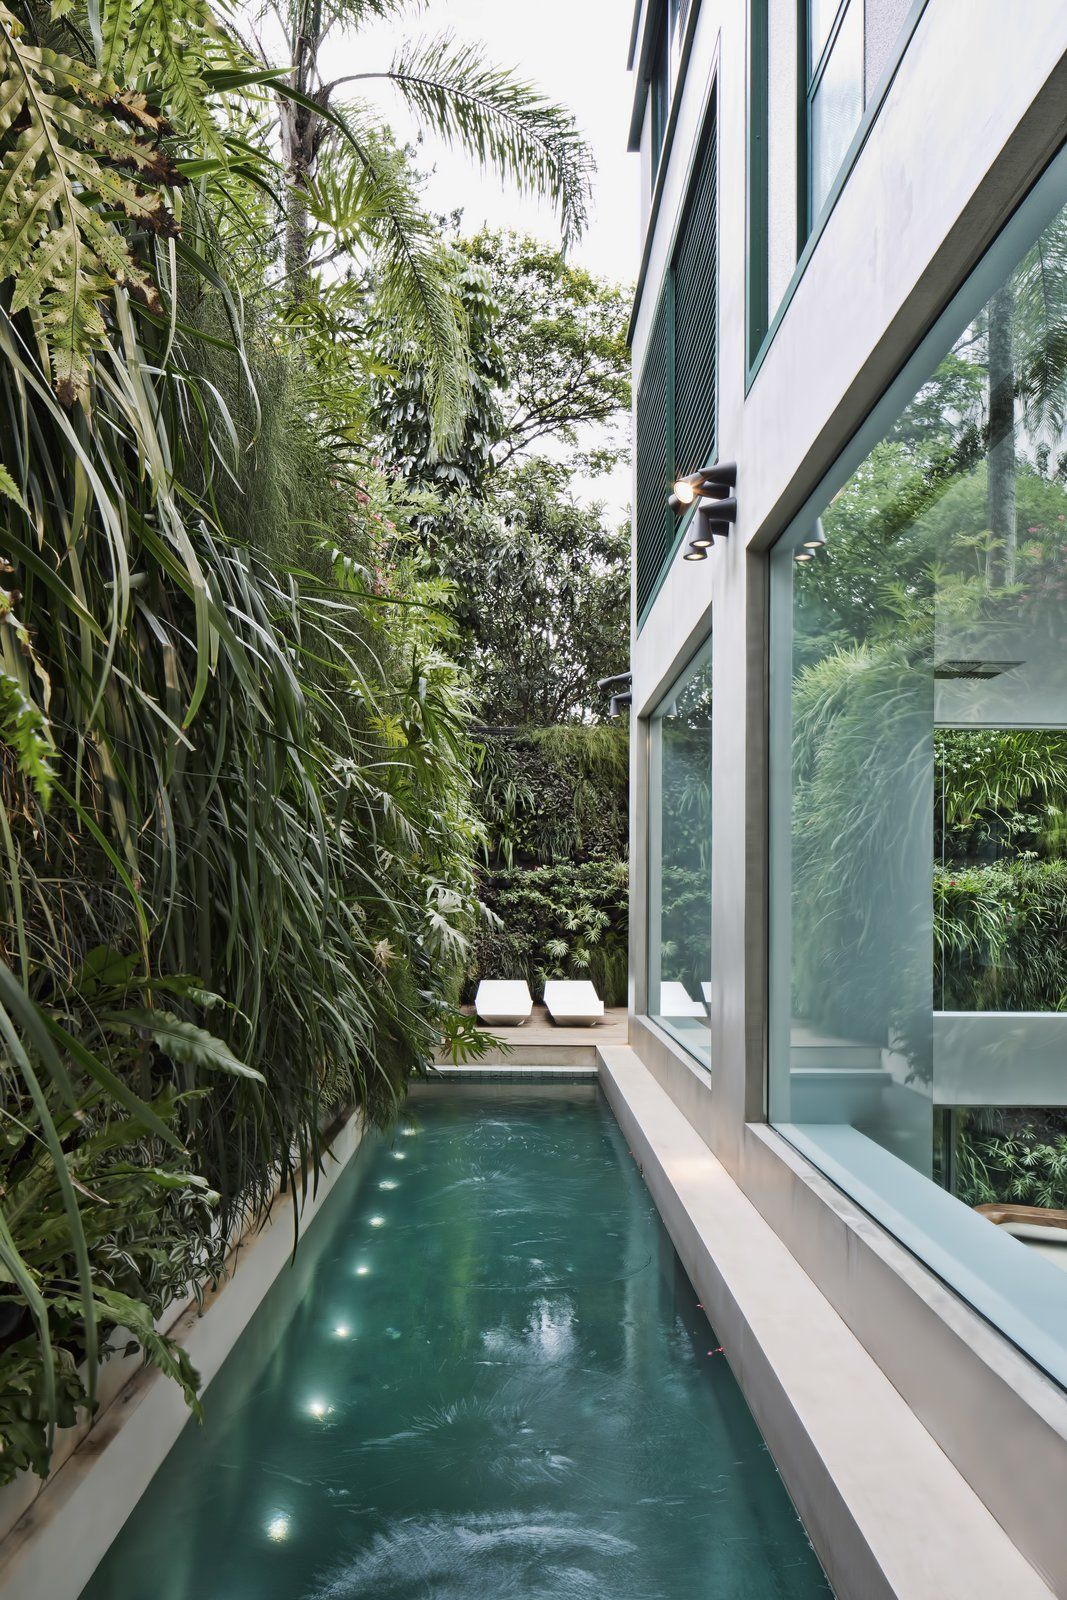 A Mesmerizing Pool Dominates This Brazilian Home Photo 3 Of 16 The Narrow Elongated Pool With A Vertica Lap Pool Designs Vertical Green Wall Backyard Pool